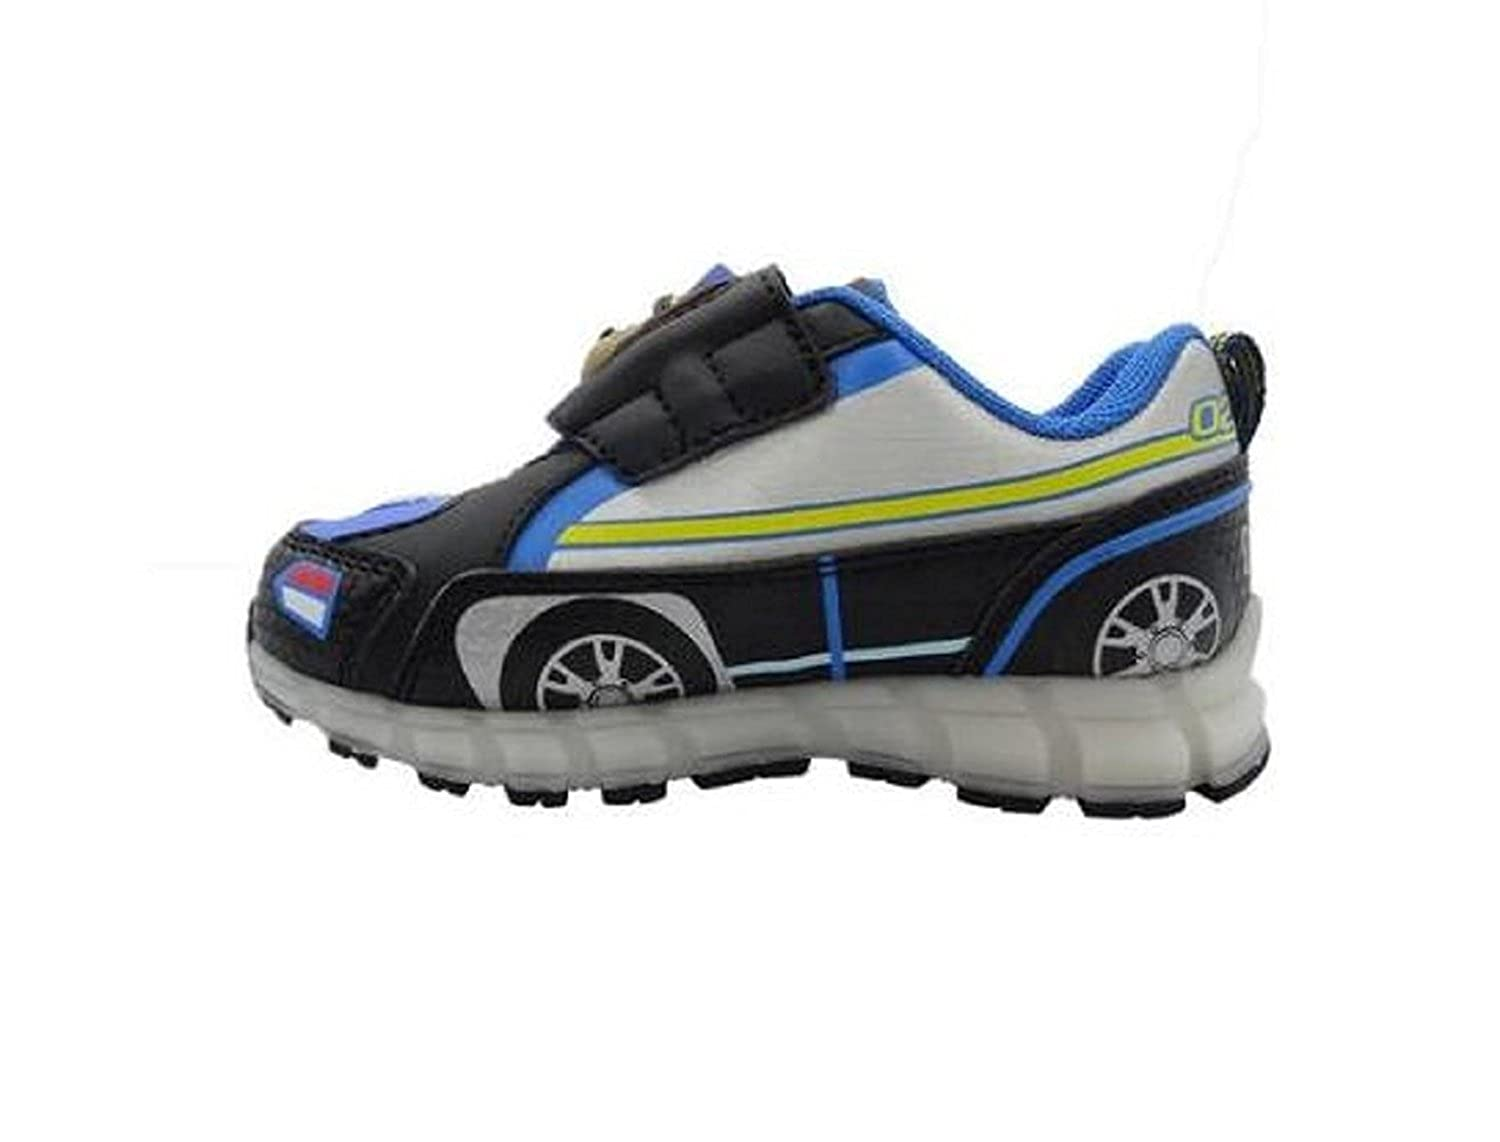 Nick JR Paw Shoes For Boys Toddler Athletic Sneaker Chase on Patrol 11